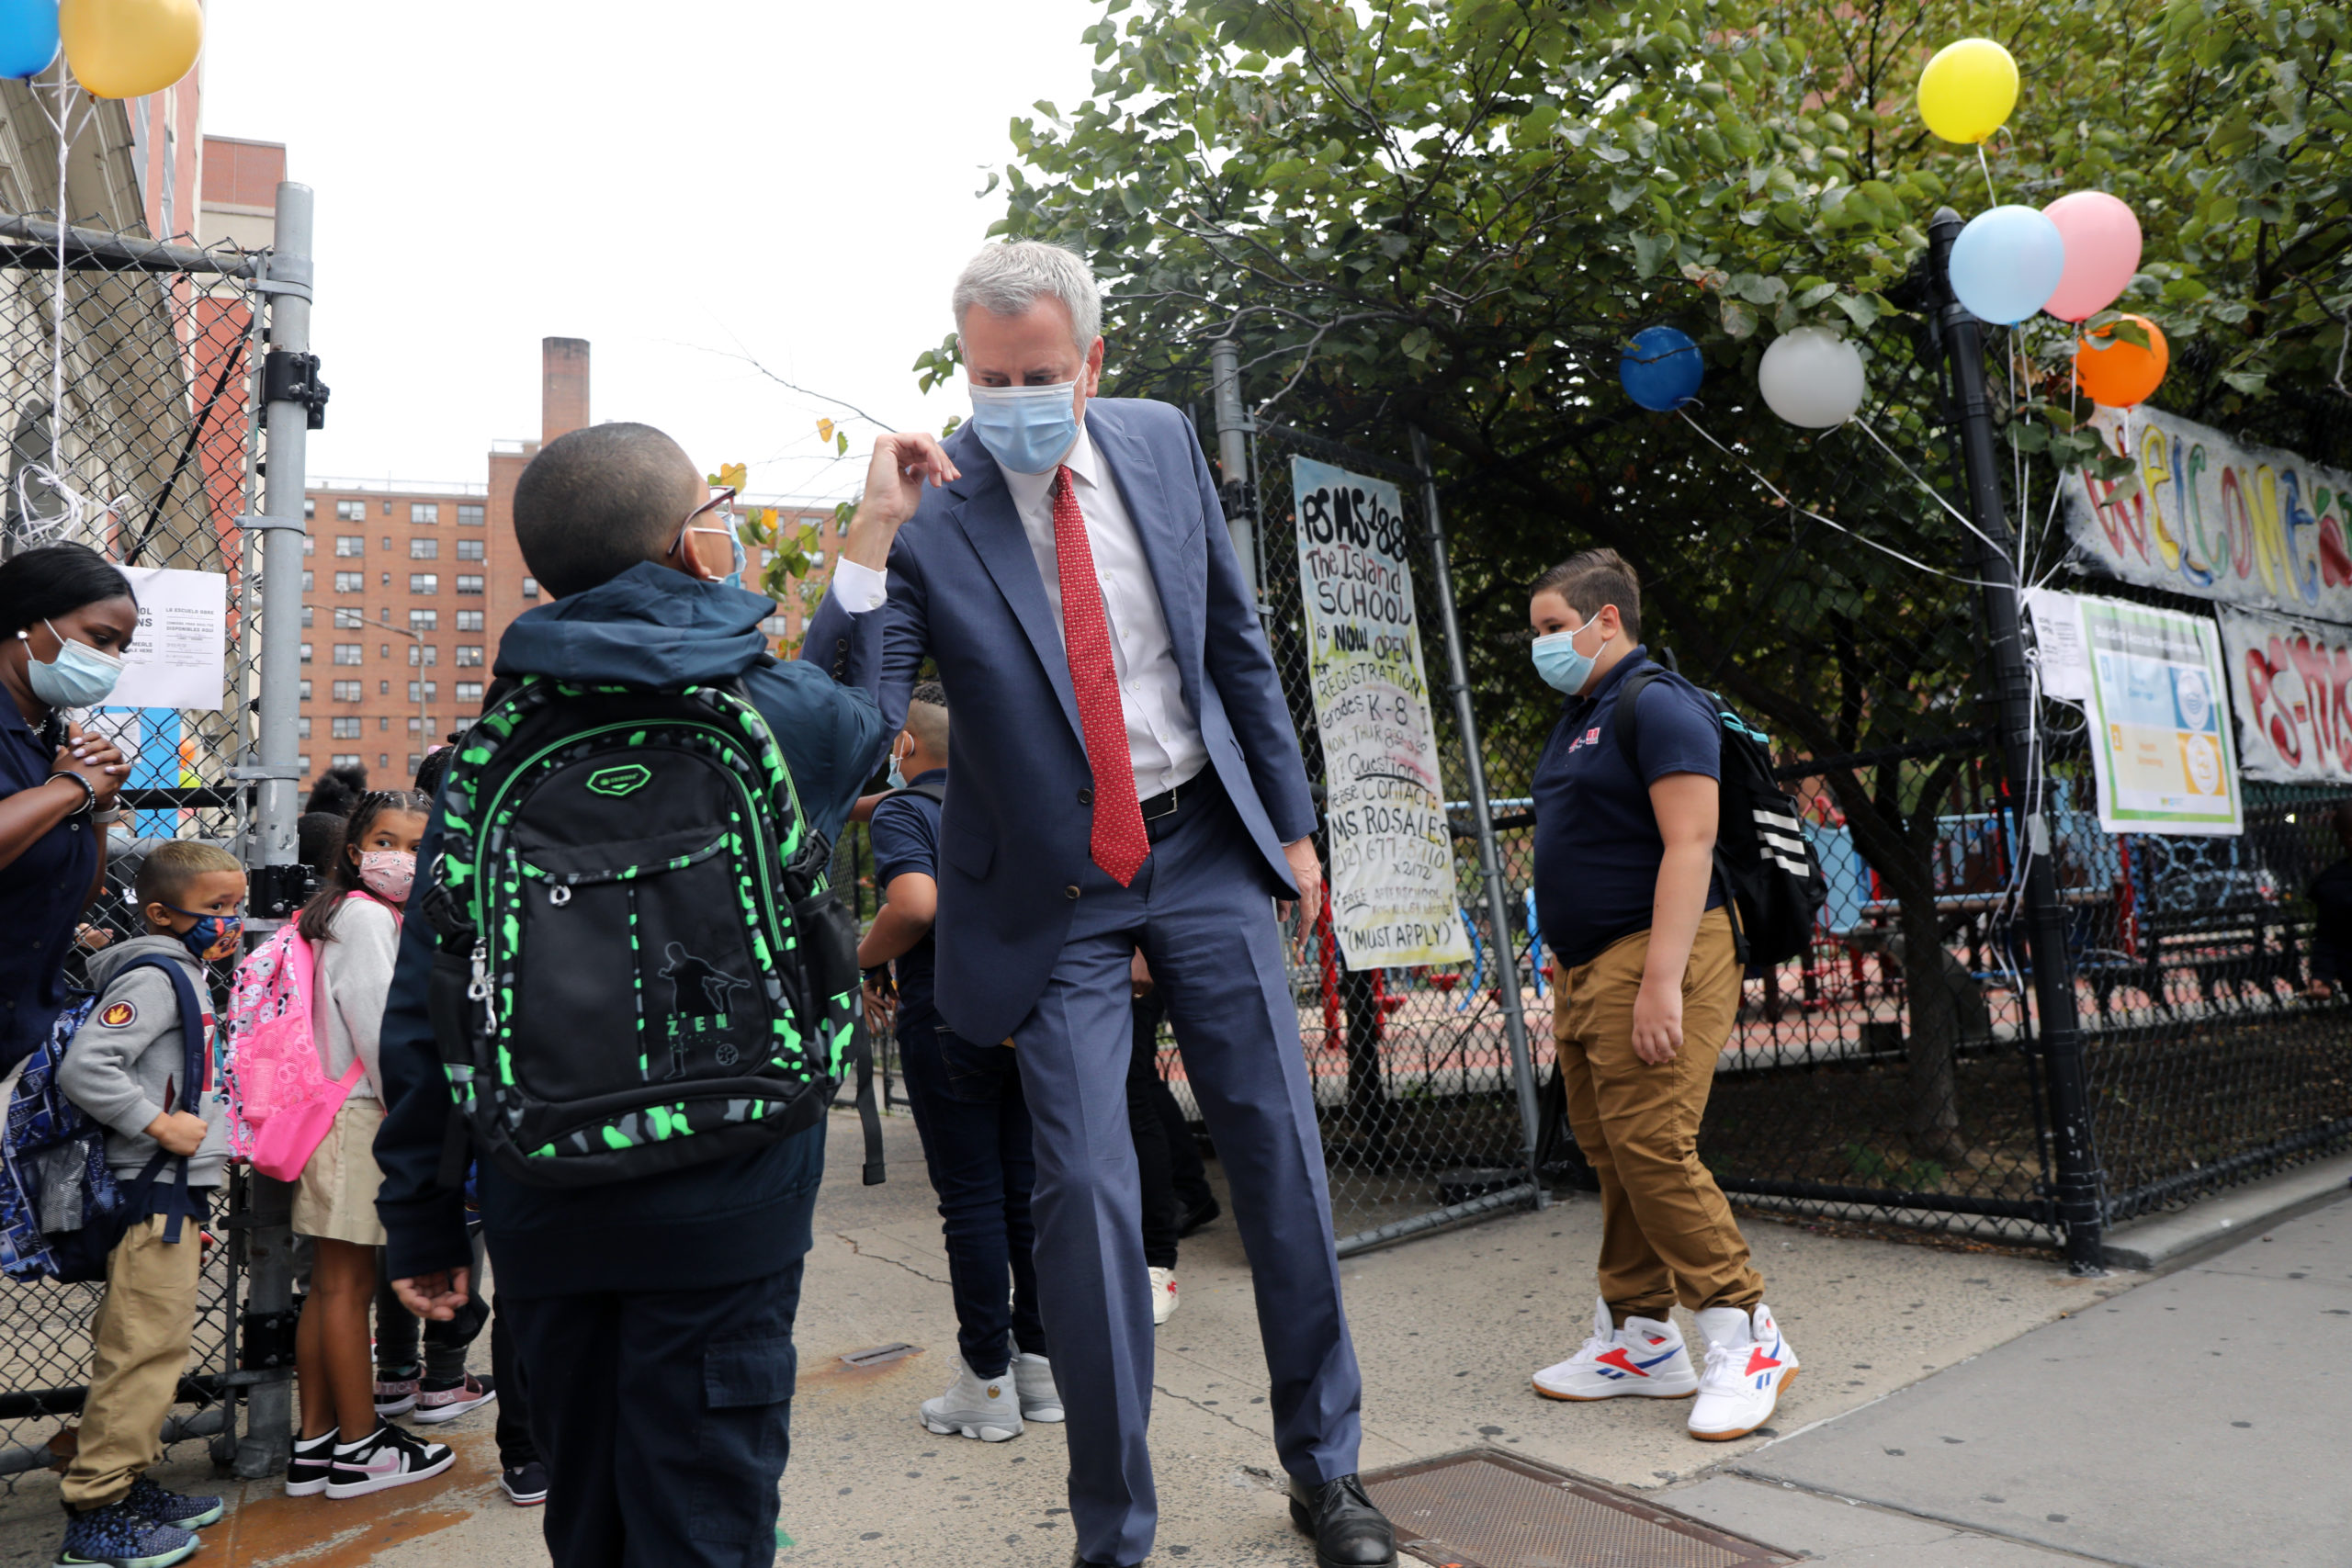 New York City Mayor Bill de Blasio elbow bumps a student at P.S. 188 as he welcomes elementary school students back to the city's public schools for in-person learning on Tuesday. (Spencer Platt/Getty Images)